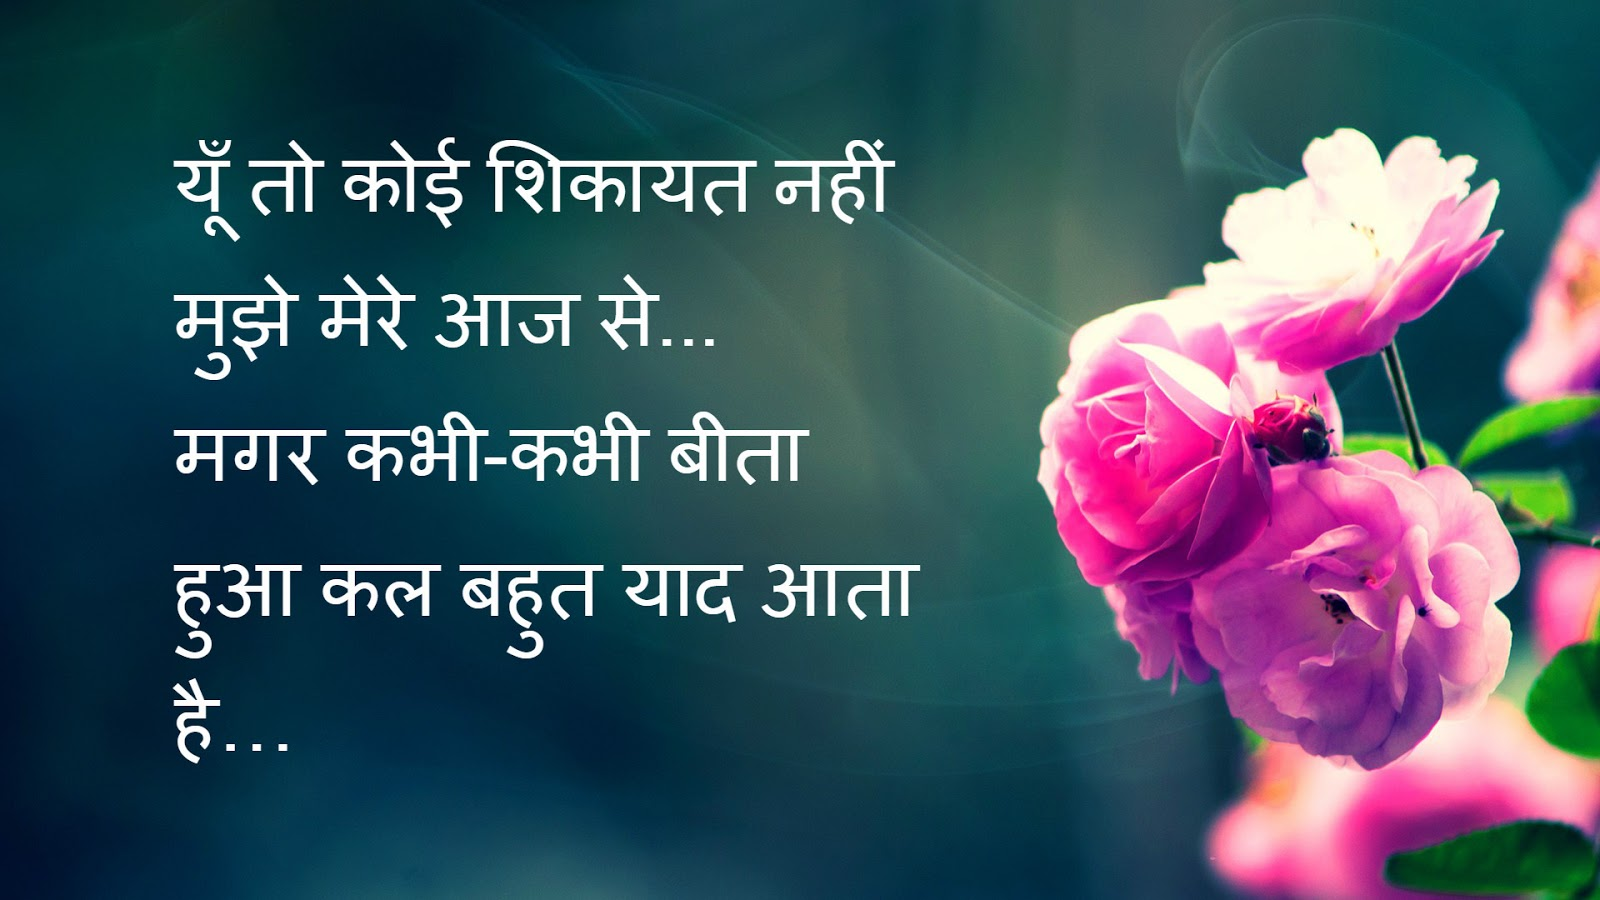 Wallpaper download love shayri - Best Hd Hindi Shayari Image Free Download Hindi Shayari Hd Image Download Love Shayari In Hindi For Girlfriend Image Daily Update Hindi Shayari Images Best